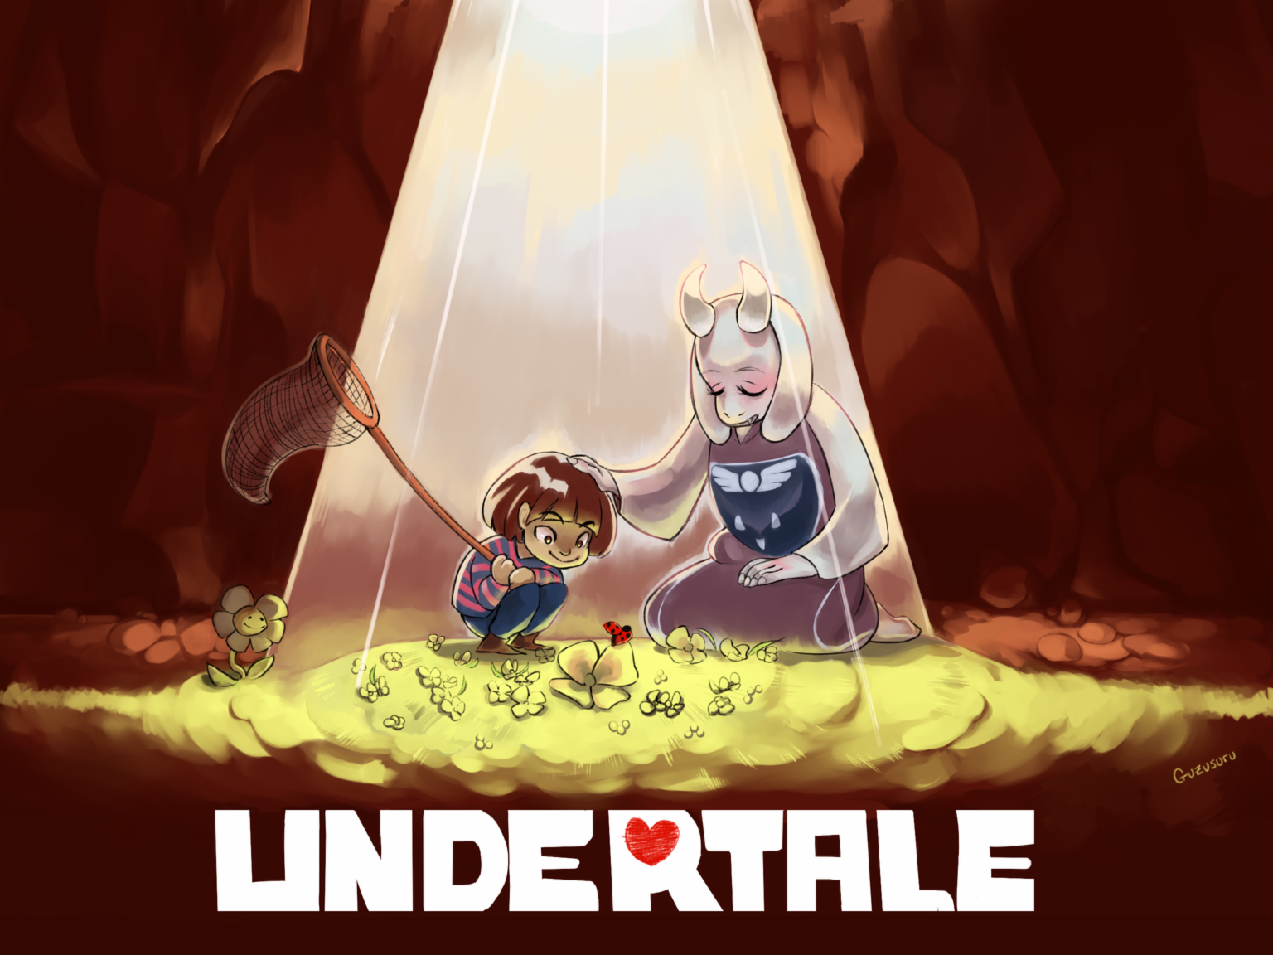 WHO are you in undertale?